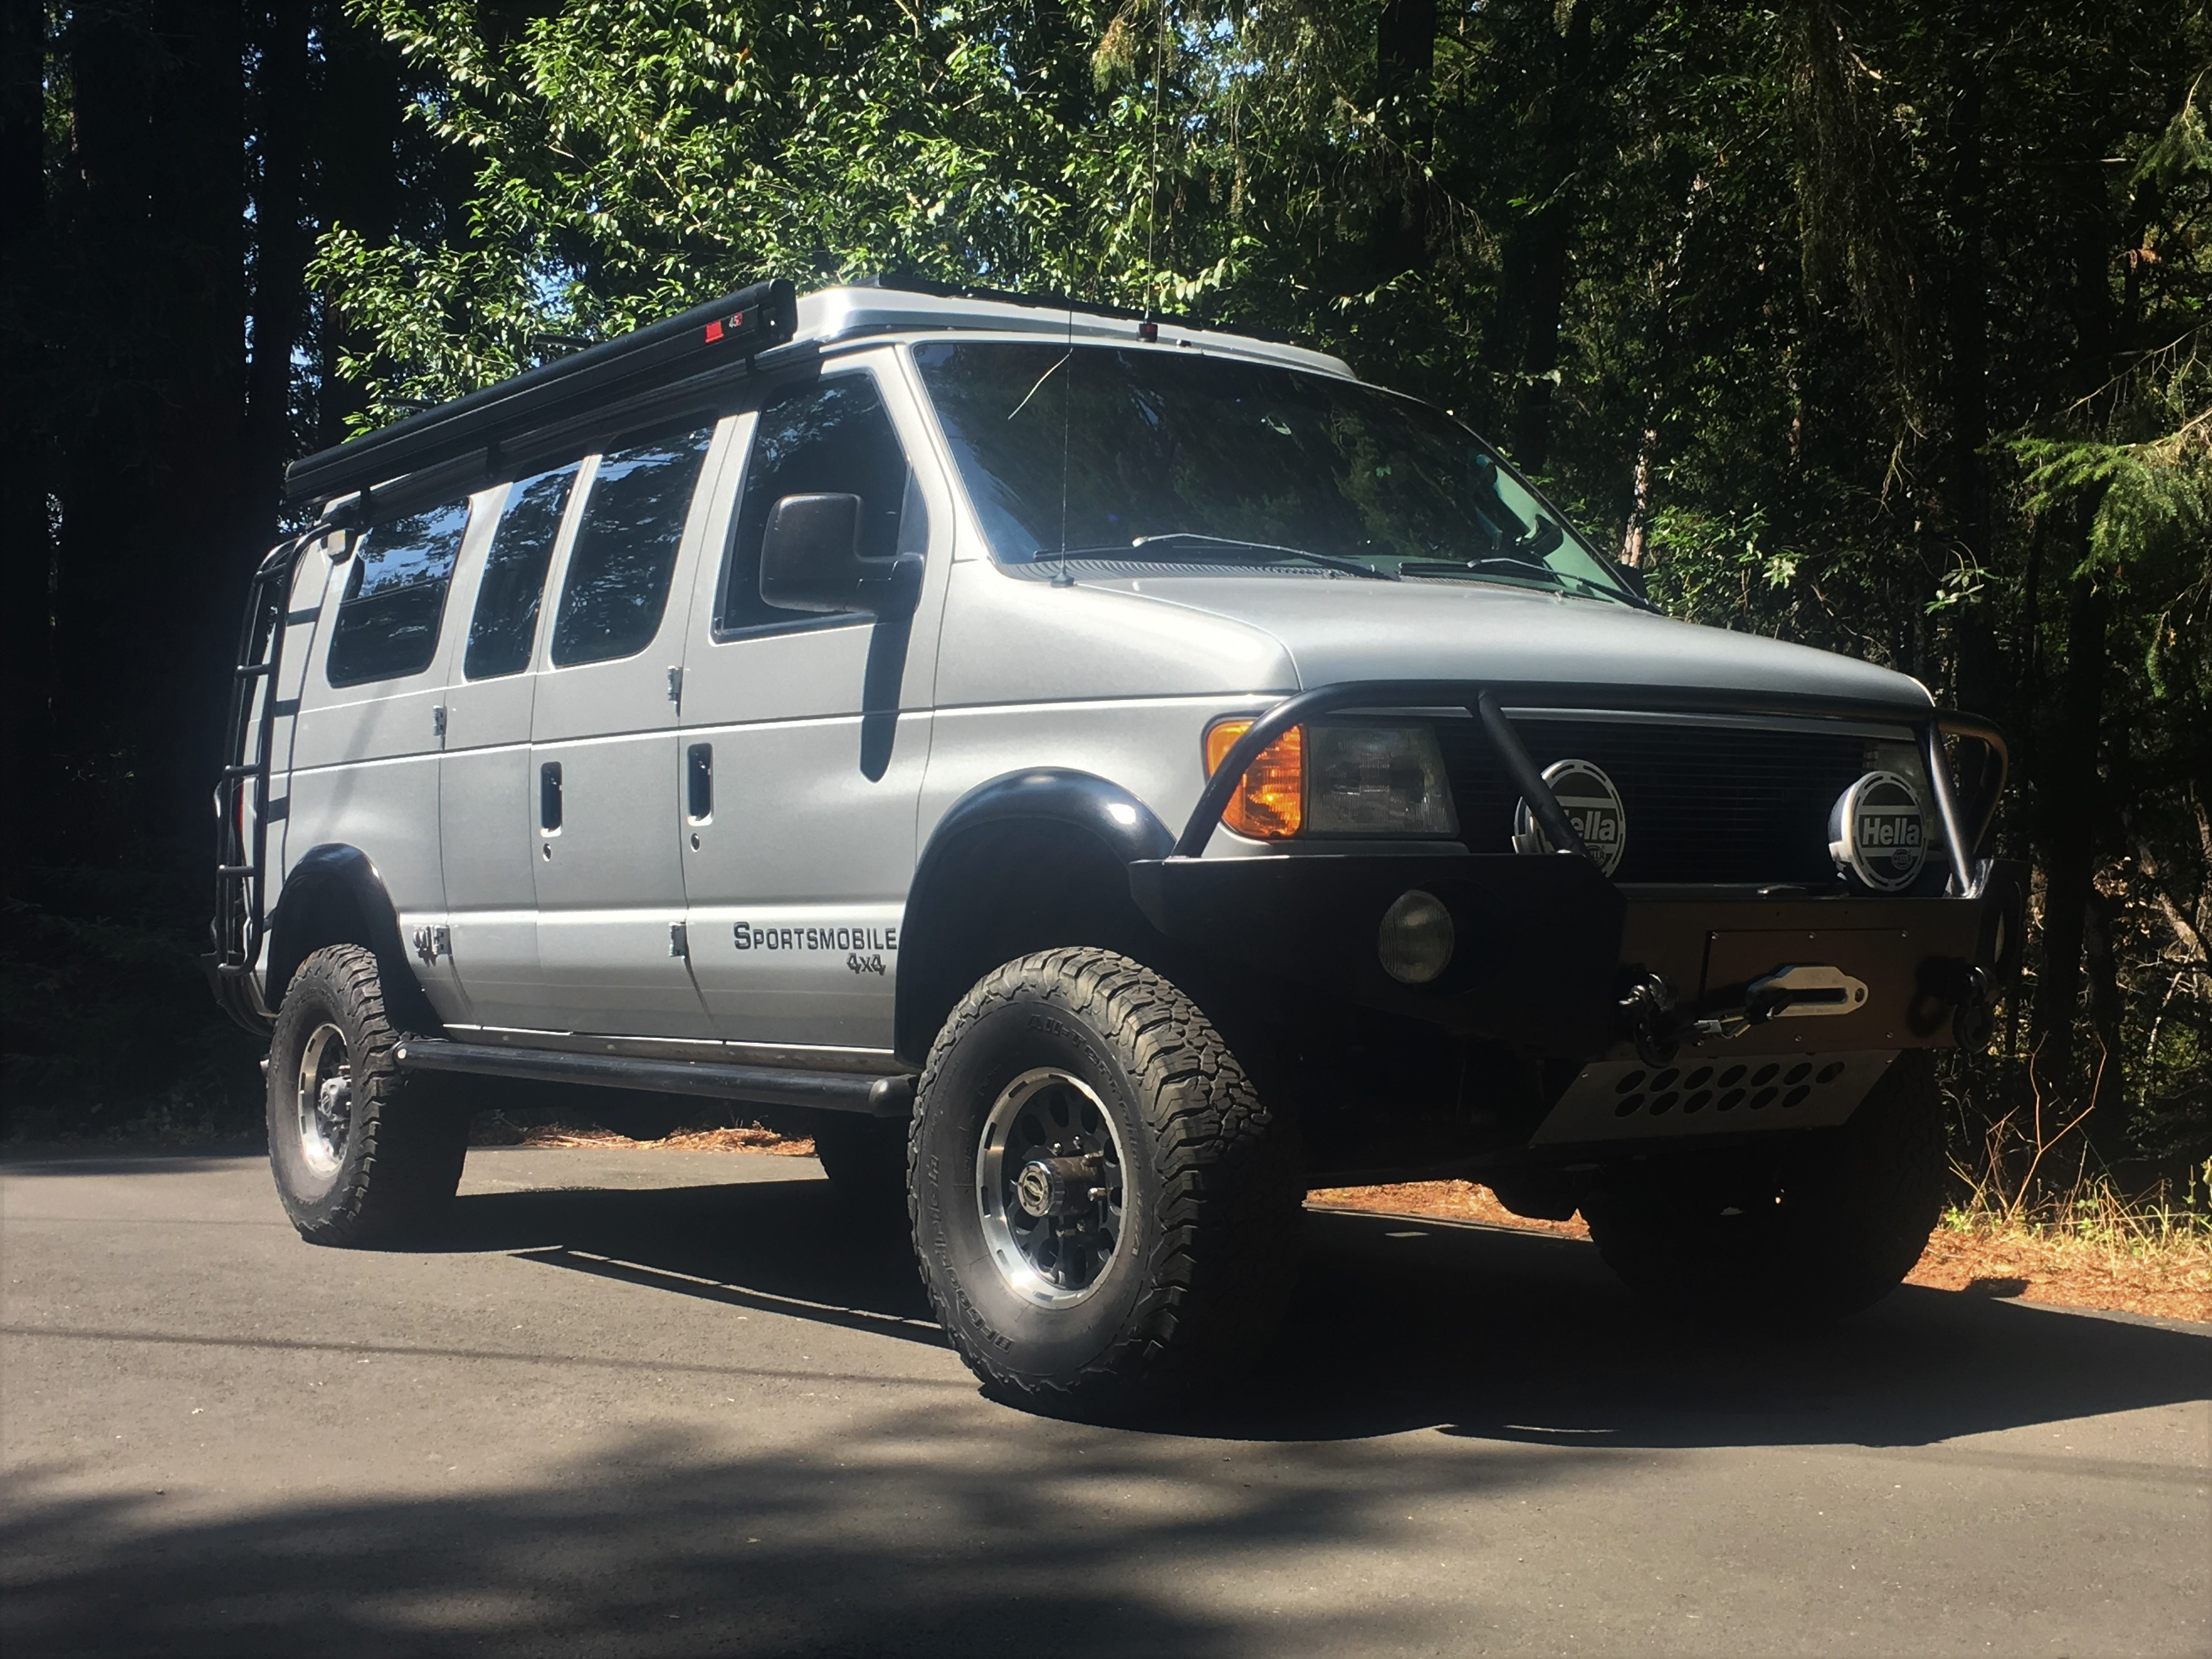 Sold Sportsmobile 4x4 Camper Van 85k Expedition Portal